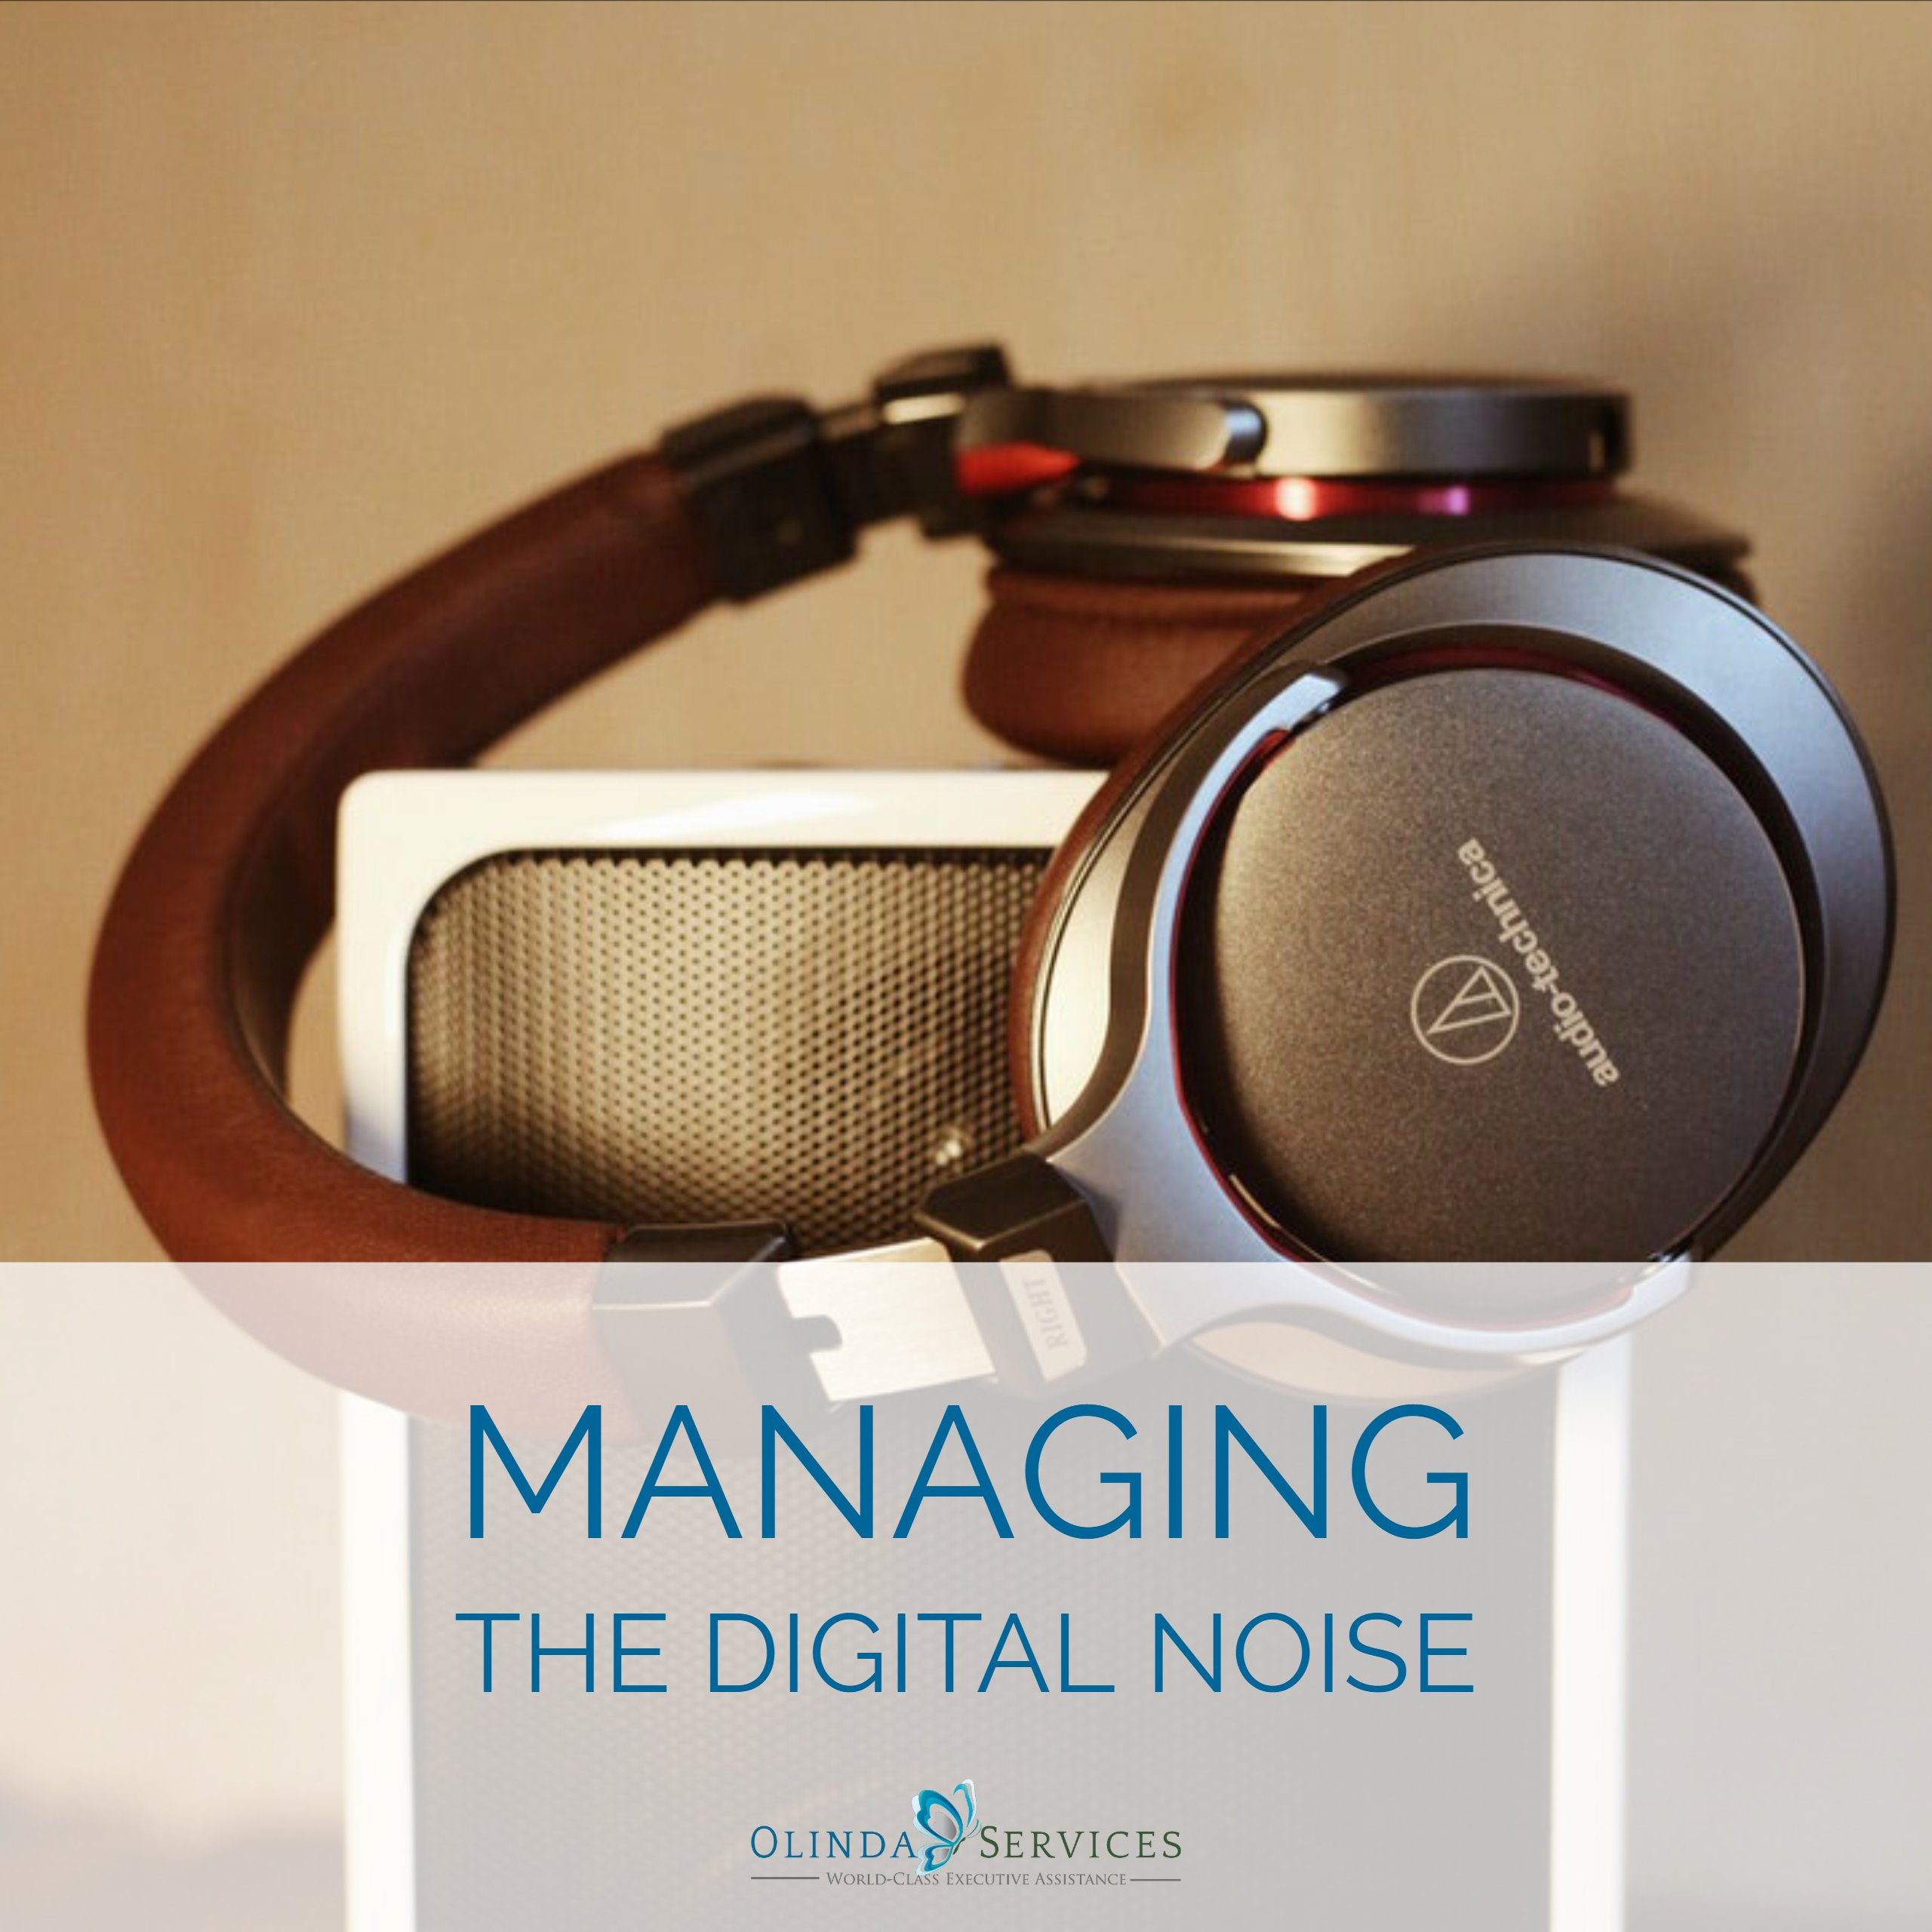 Managing the Digital Noise